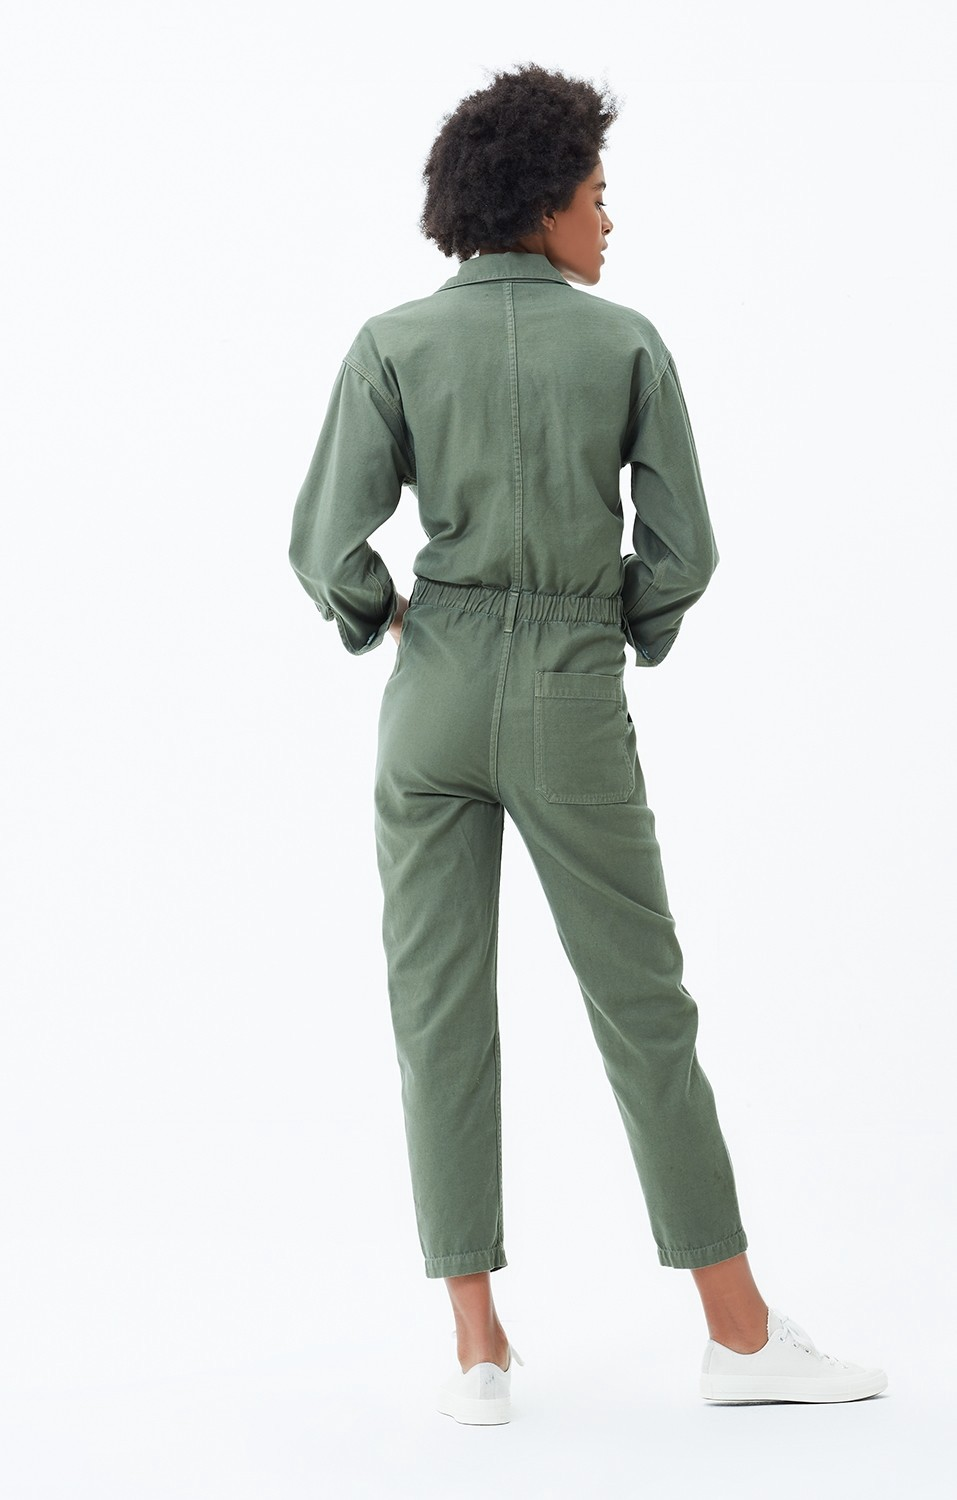 b74e72d8f Citizens Of Humanity Marta Jumpsuit In Retreat - XS Green | Products ...